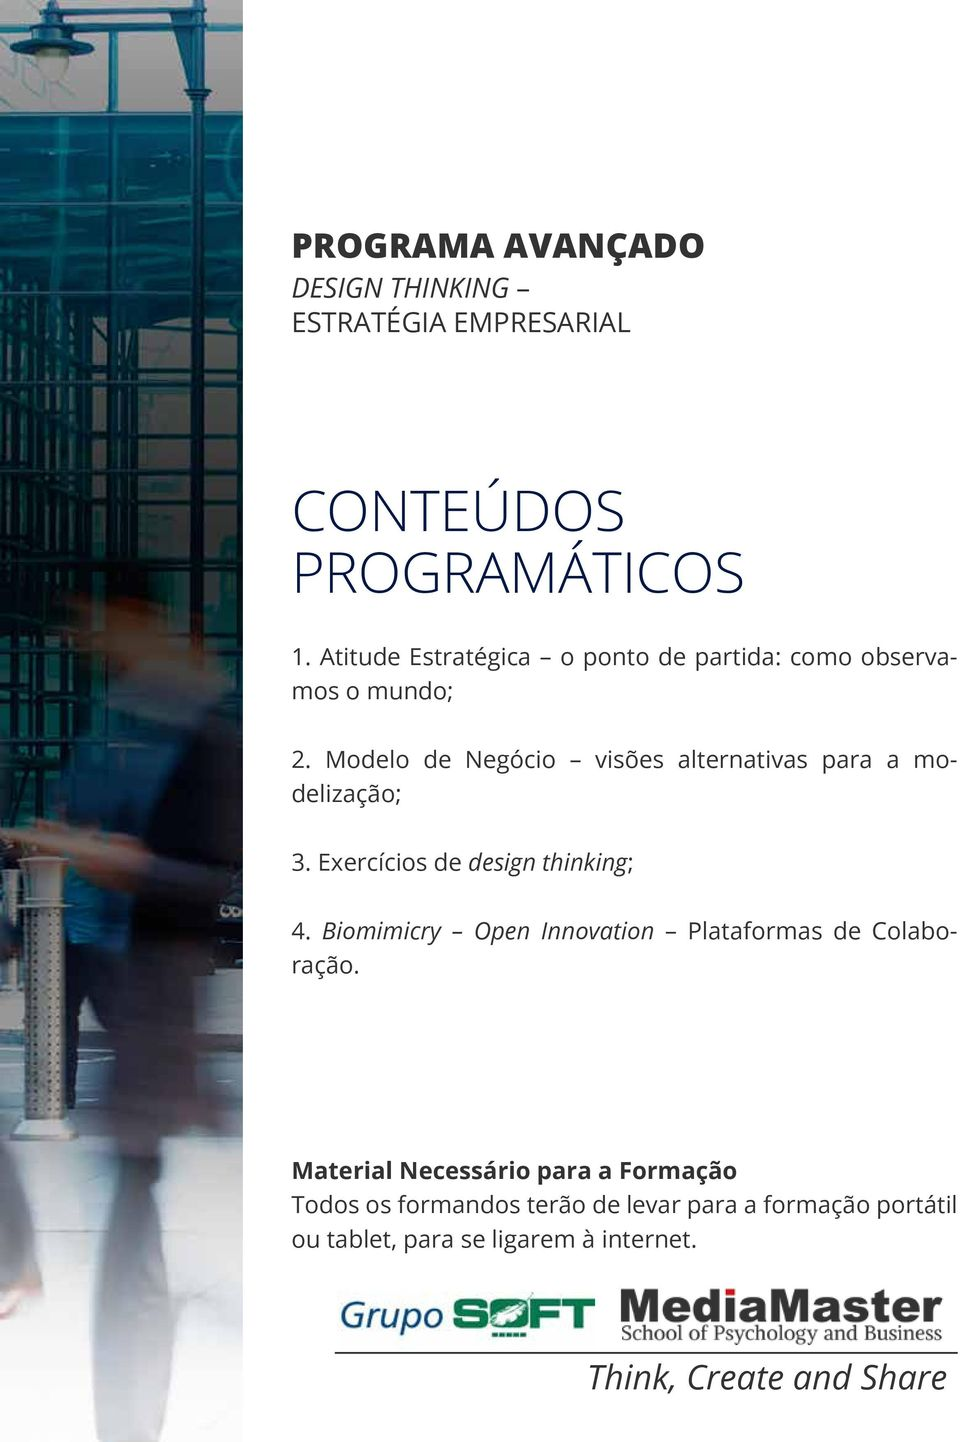 Biomimicry Open Innovation Plataformas de Colaboração.